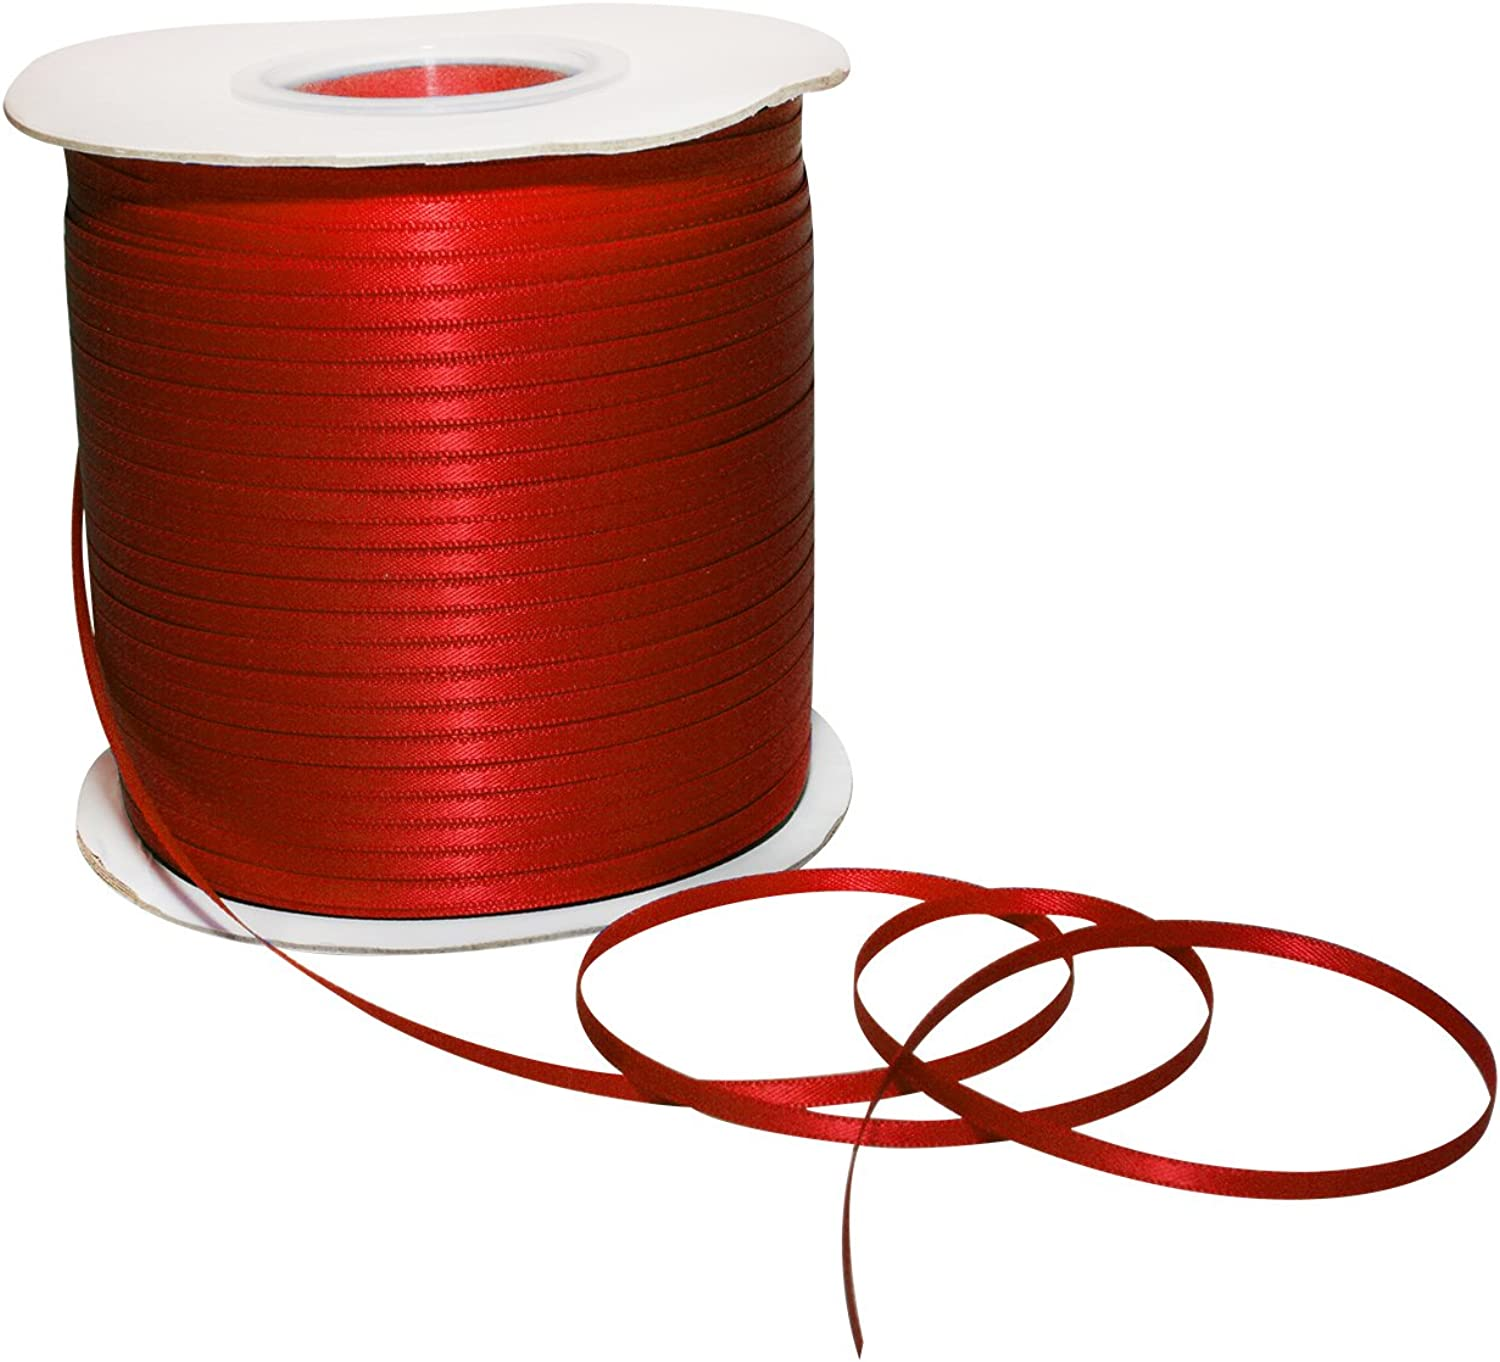 Morex Ribbon 08803 500250 Double Face Satin Polyester Ribbon, 1 8  500 yd., Red